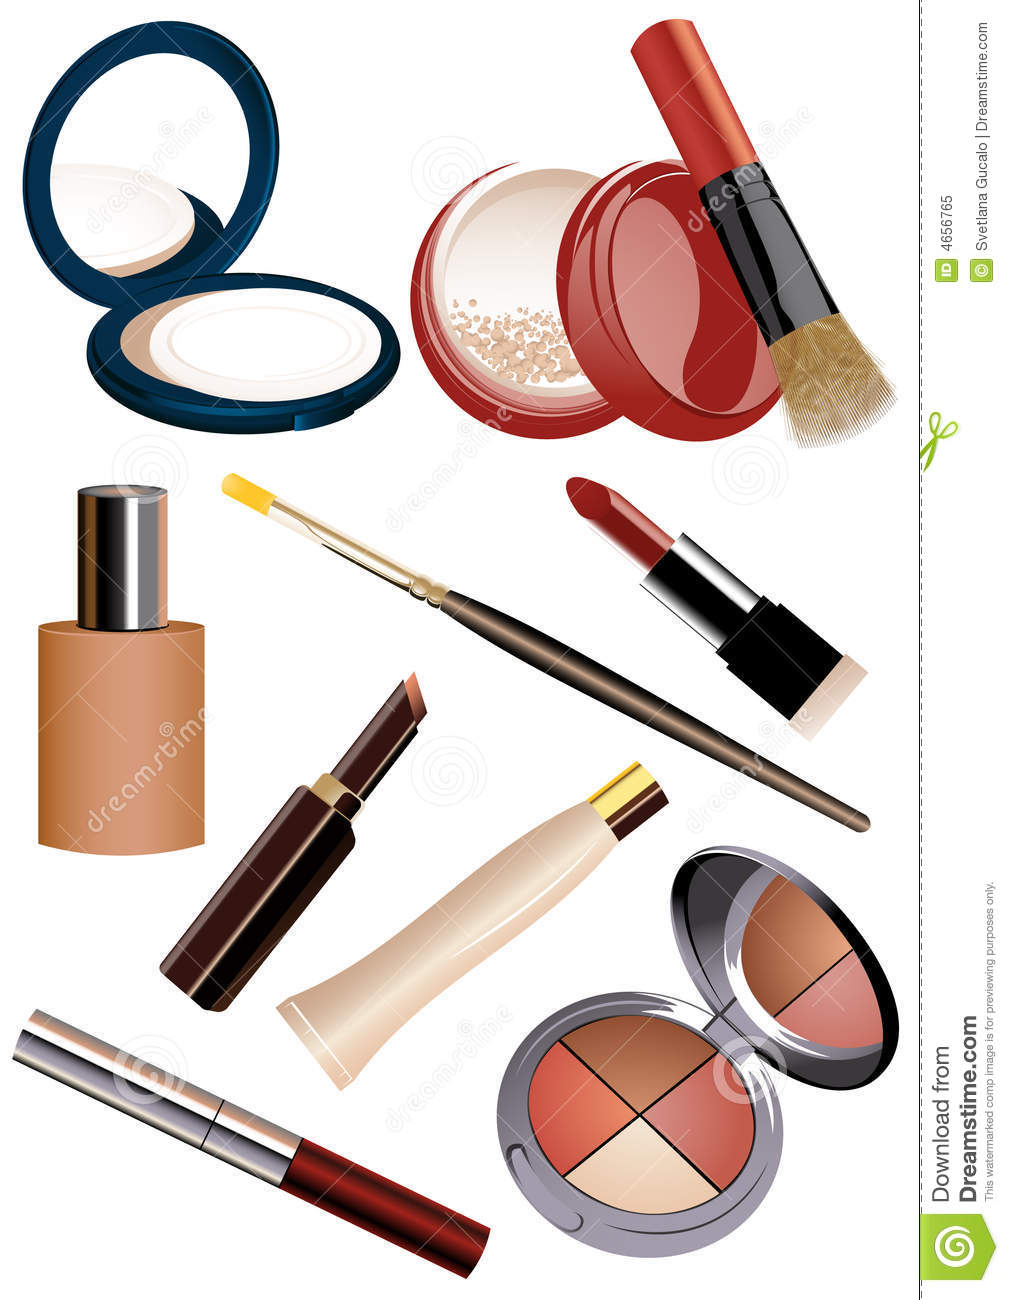 makeup objects royalty free stock photo image 4656765 manicure clip art background manicure clip art background